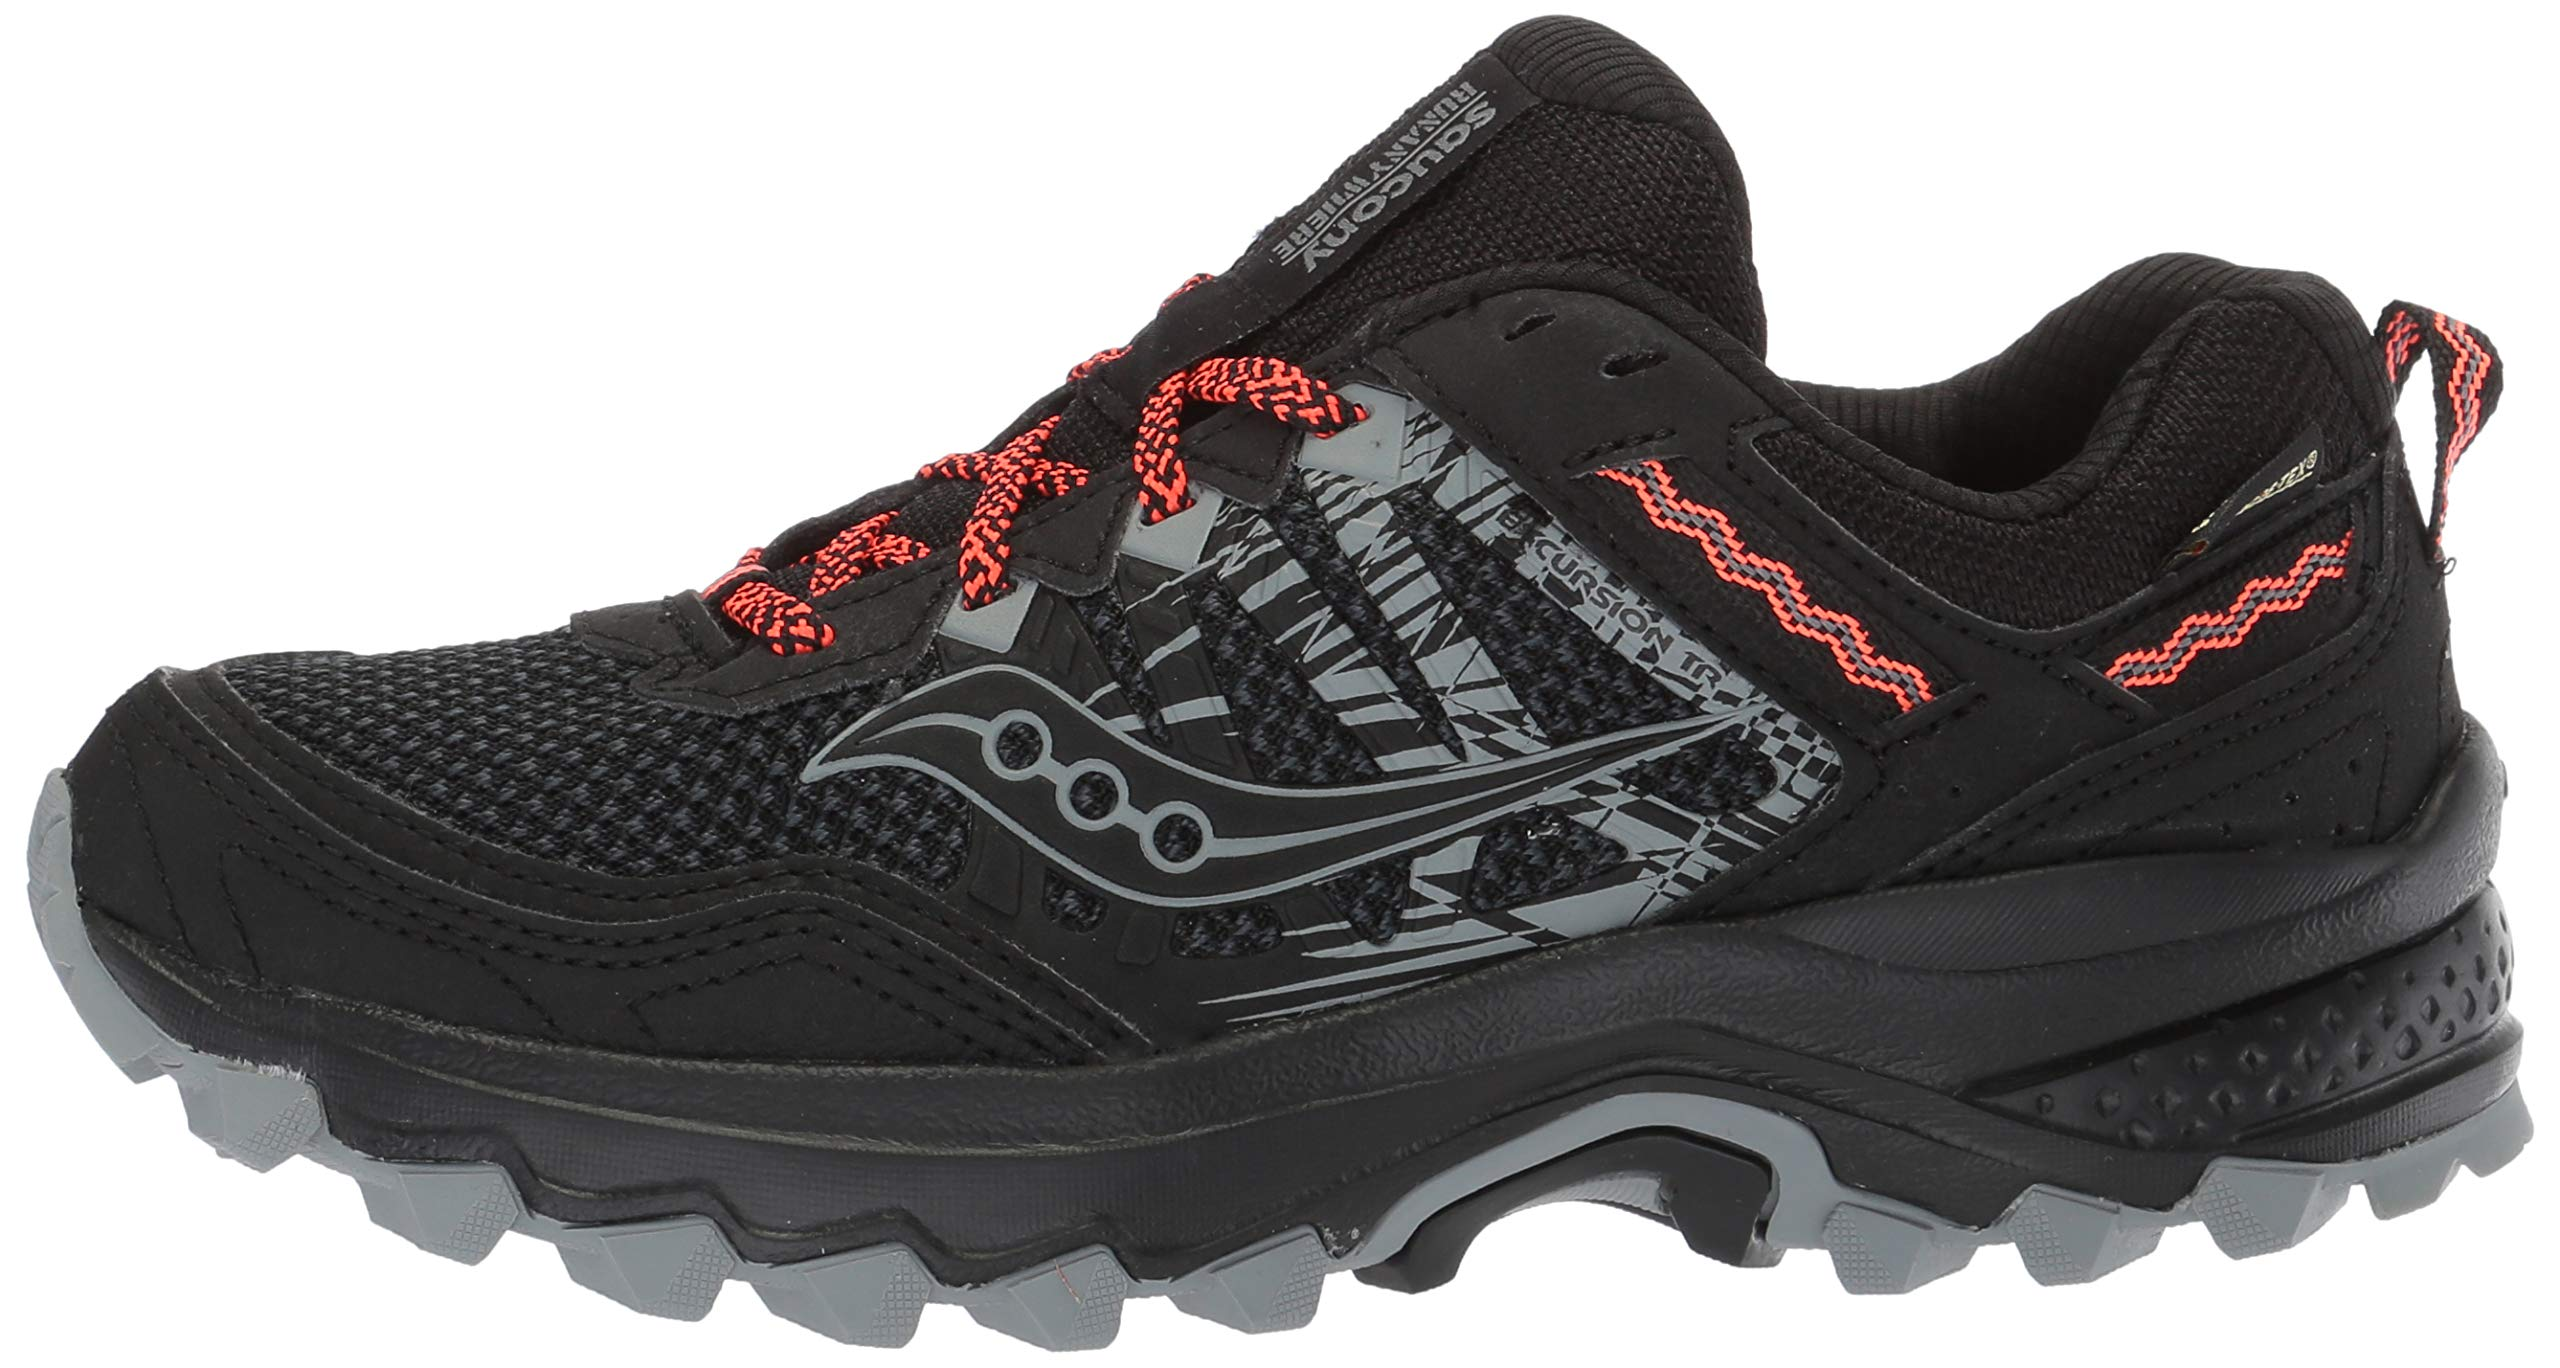 81HeKWkIijL - Saucony Women's Excursion Tr12 GTX Training Shoes